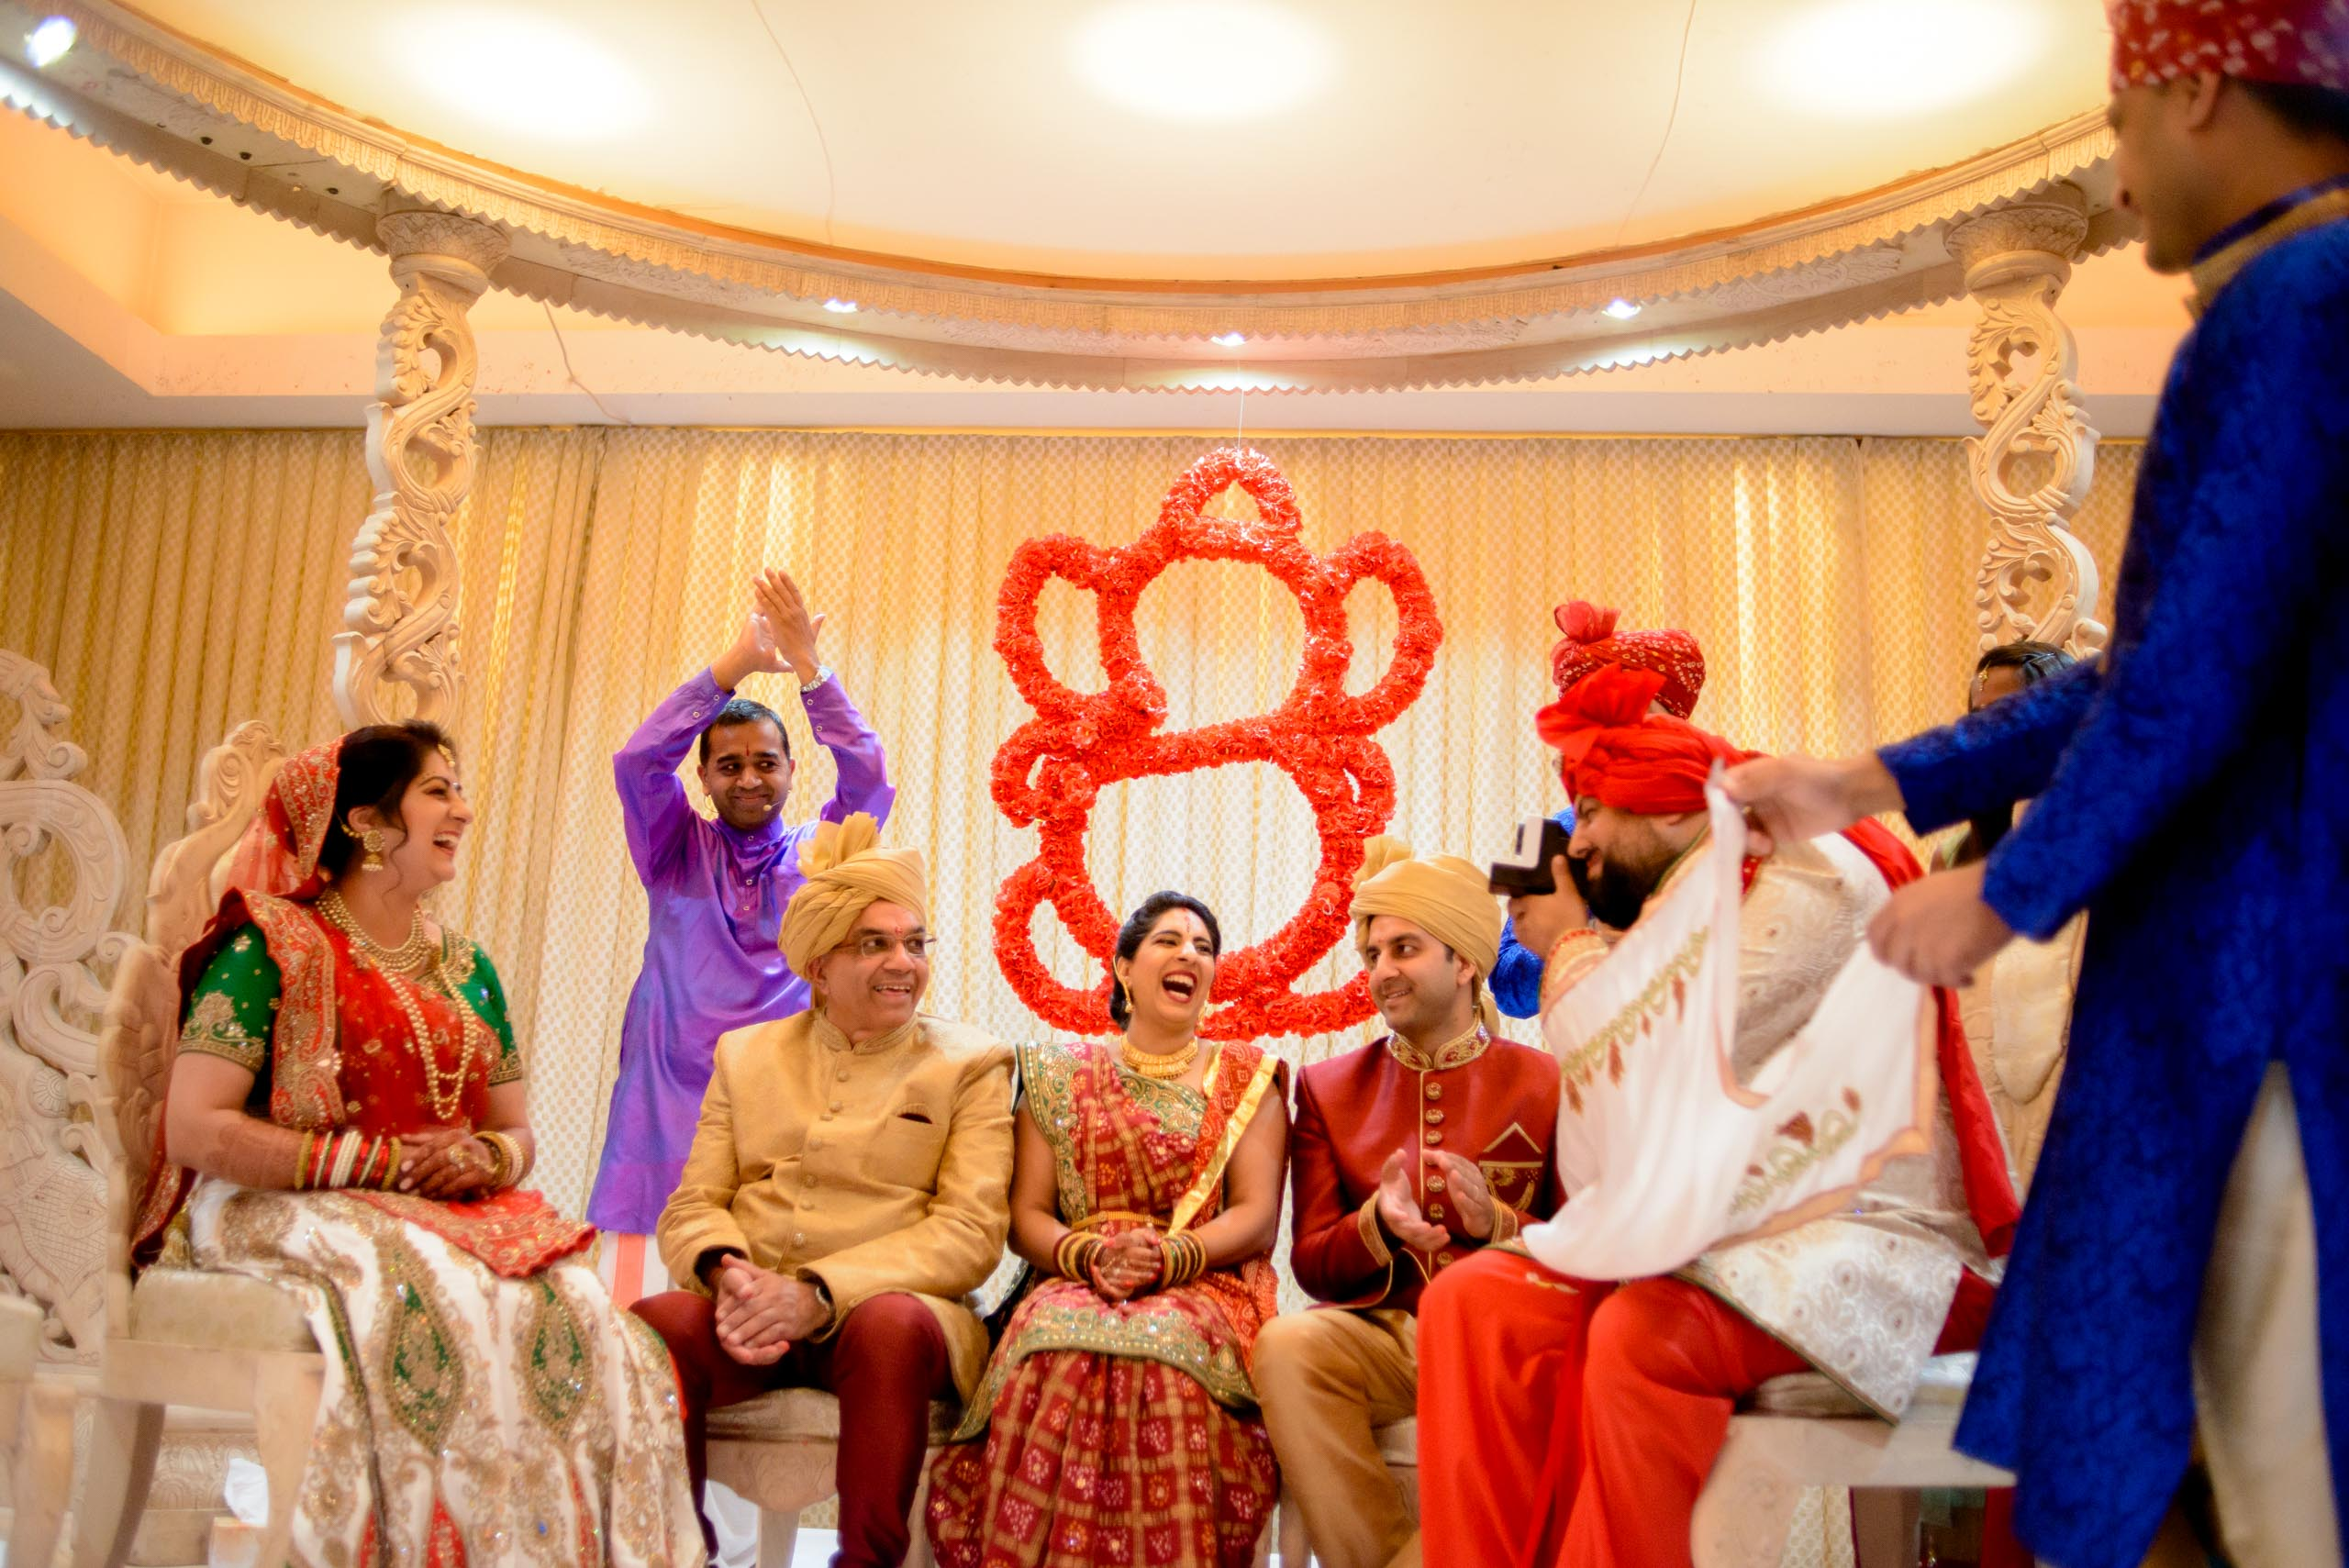 Amit&Amee-preview-edenmoments-63